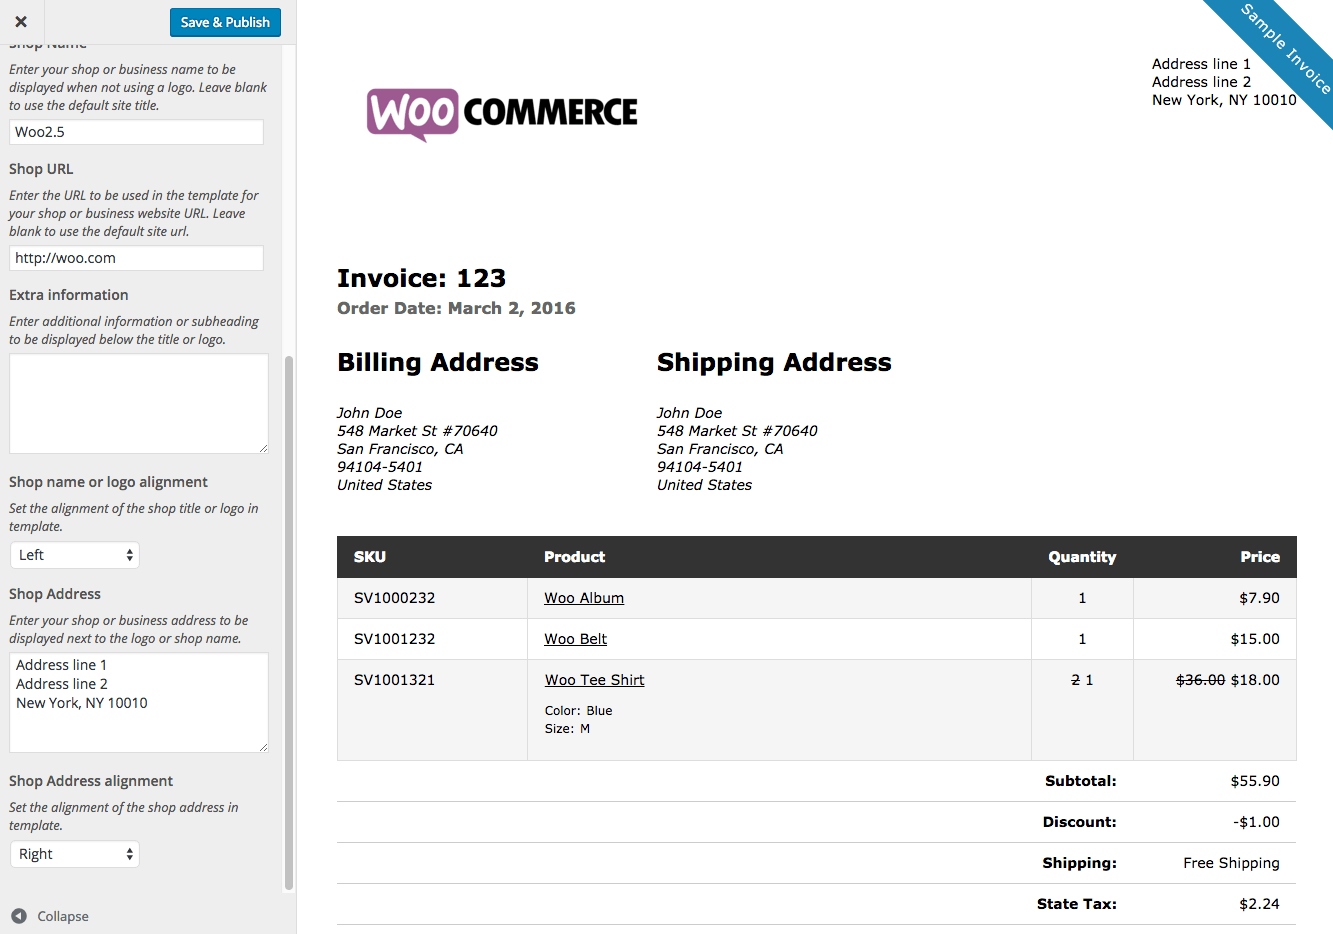 Reliefworkersus  Nice Woocommerce Print Invoices Amp Packing Lists  Woocommerce Docs With Gorgeous Woocommerce Print Invoices  Packing Lists Customizer With Appealing Daycare Receipts Also Chilli Receipt In Addition Editable Receipt Template And Usmc Cif Gear Receipt As Well As Fake Walmart Receipts Additionally Return Item Without Receipt From Docswoocommercecom With Reliefworkersus  Gorgeous Woocommerce Print Invoices Amp Packing Lists  Woocommerce Docs With Appealing Woocommerce Print Invoices  Packing Lists Customizer And Nice Daycare Receipts Also Chilli Receipt In Addition Editable Receipt Template From Docswoocommercecom